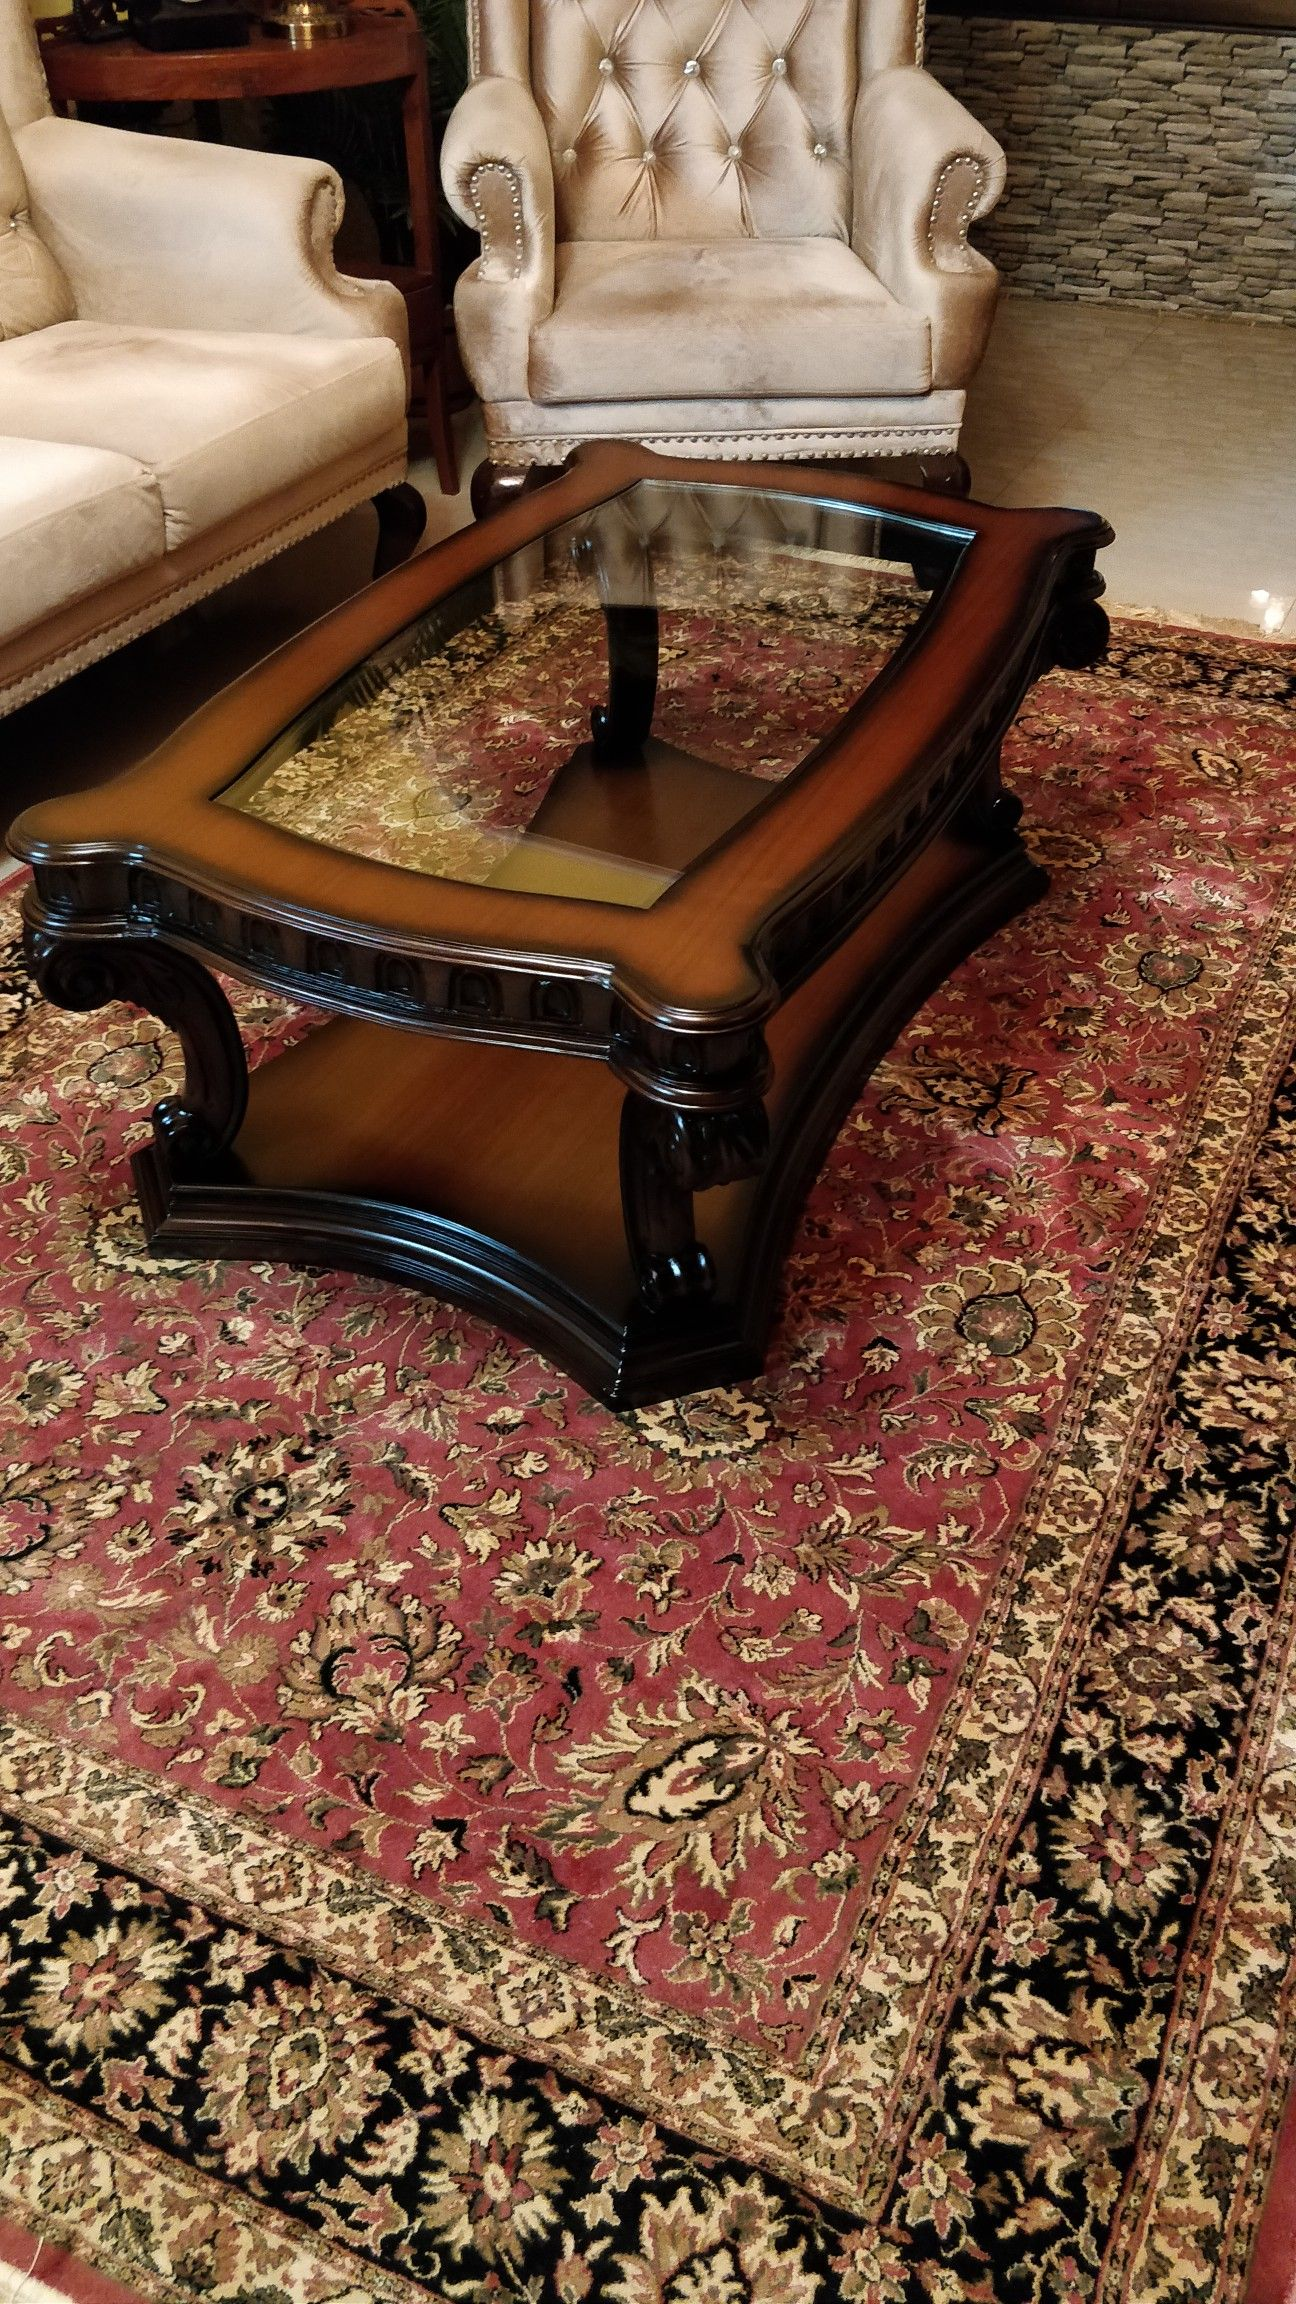 Pin By Gaurav Hegde On Victorian Centre Table Coffee Table Wood Center Table Decor